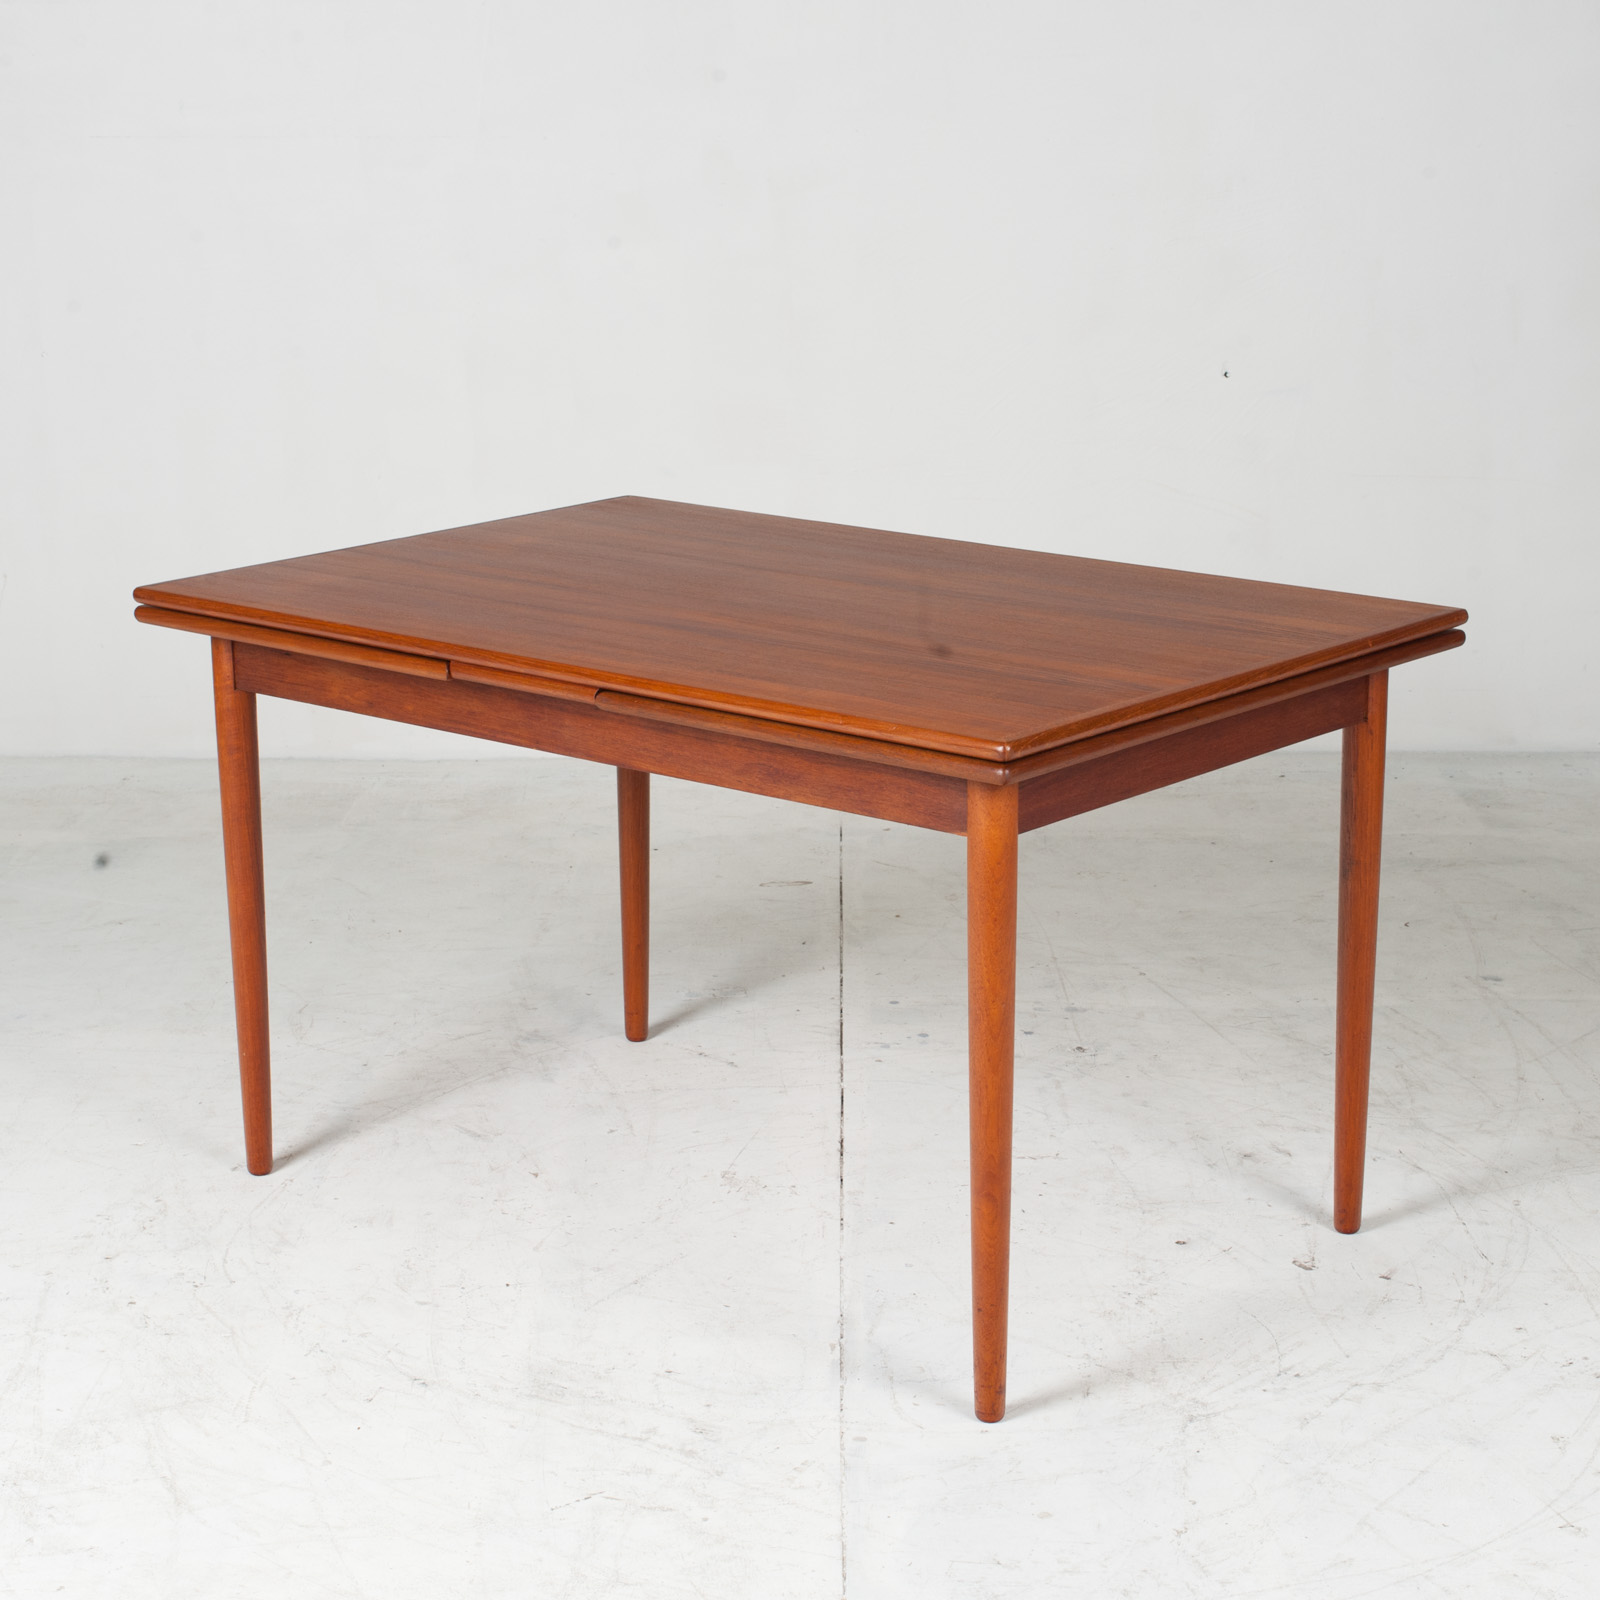 Rectangular Dining Table In Teak With Concealed Extentions 1960s Denmark2